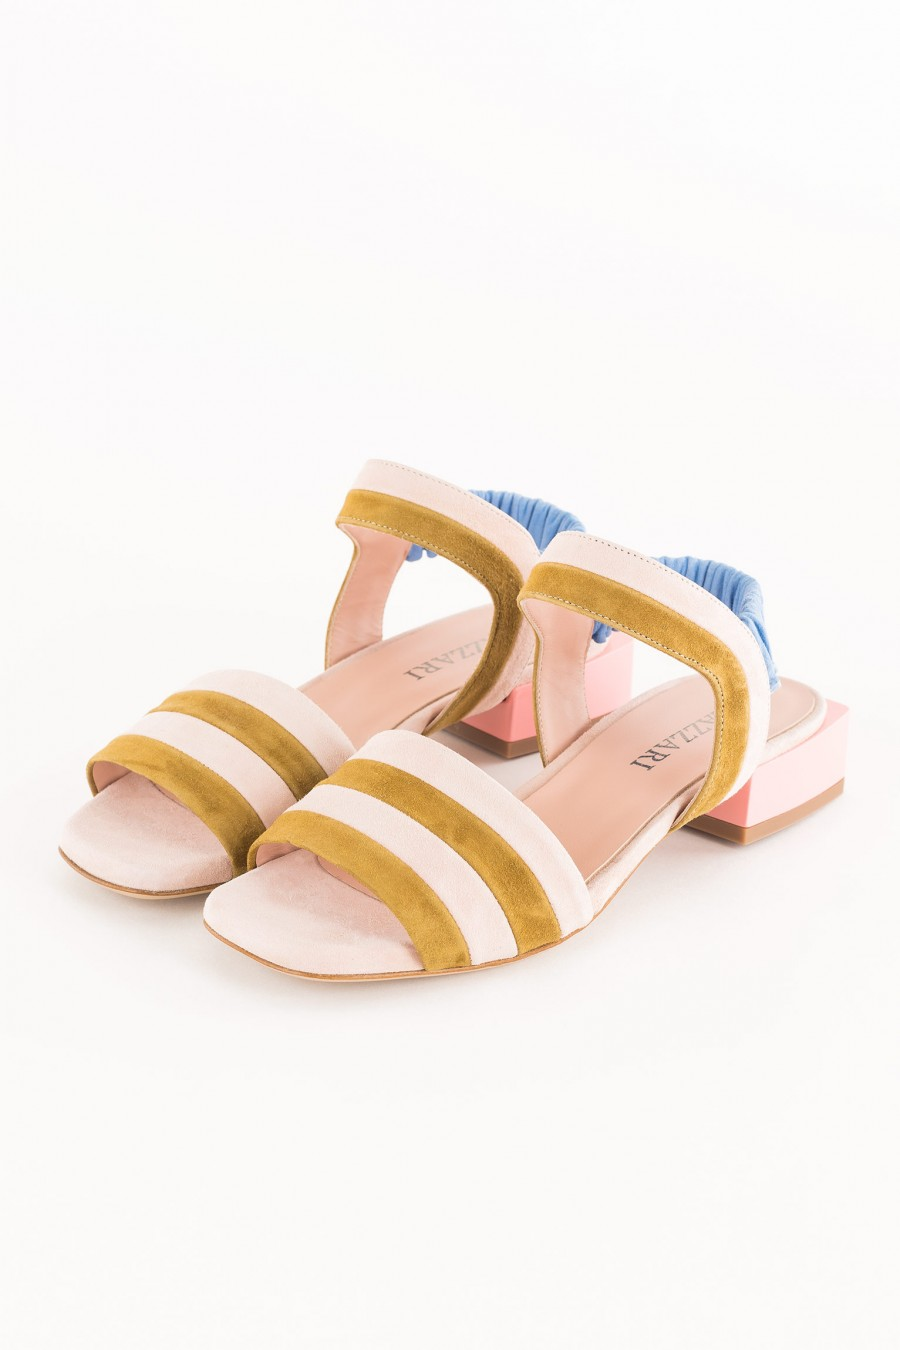 pink sandal with low square heel